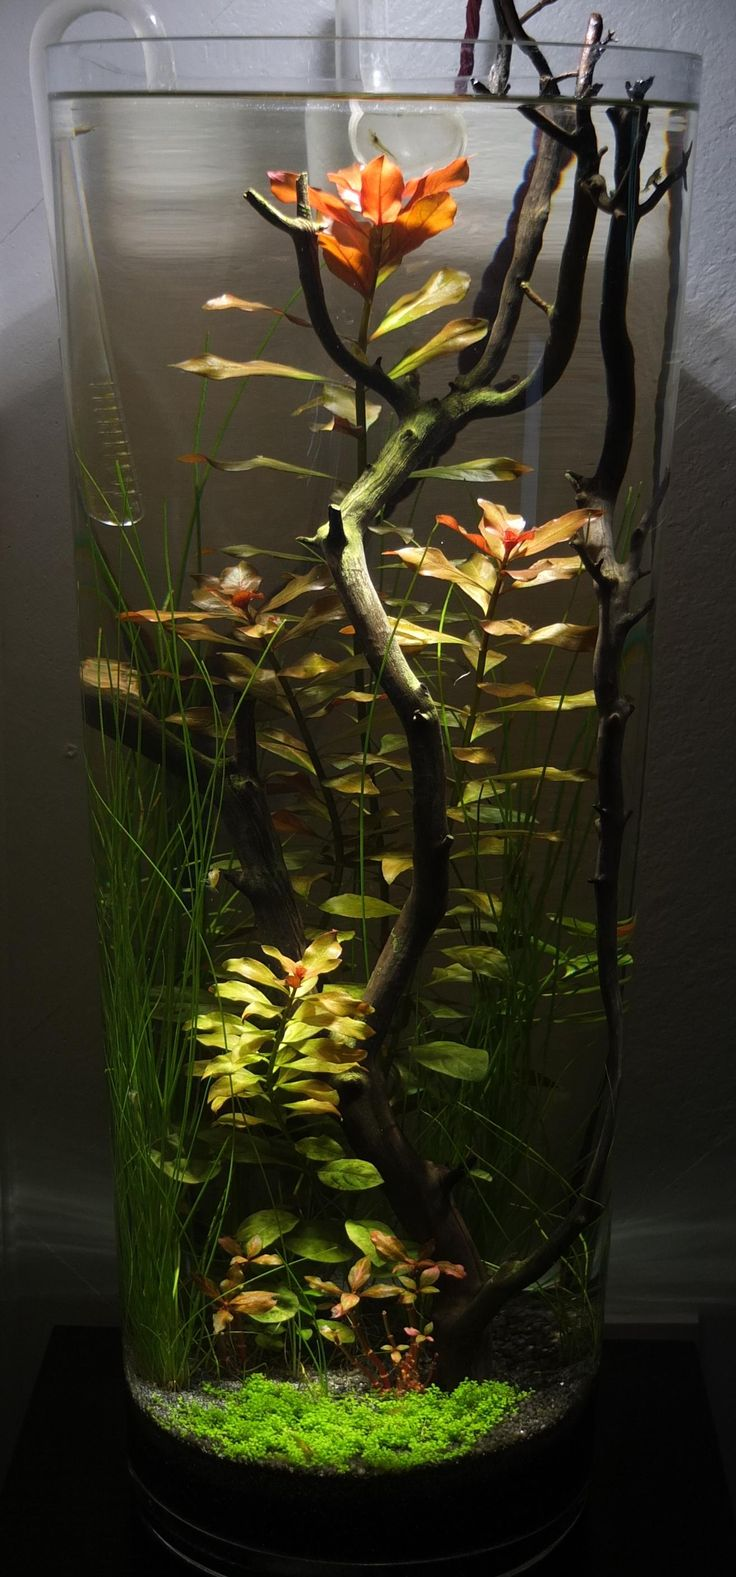 Freshwater aquarium fish for sale online uk - My Vase Tank A Few Months In Best Fish Tanksfreshwater